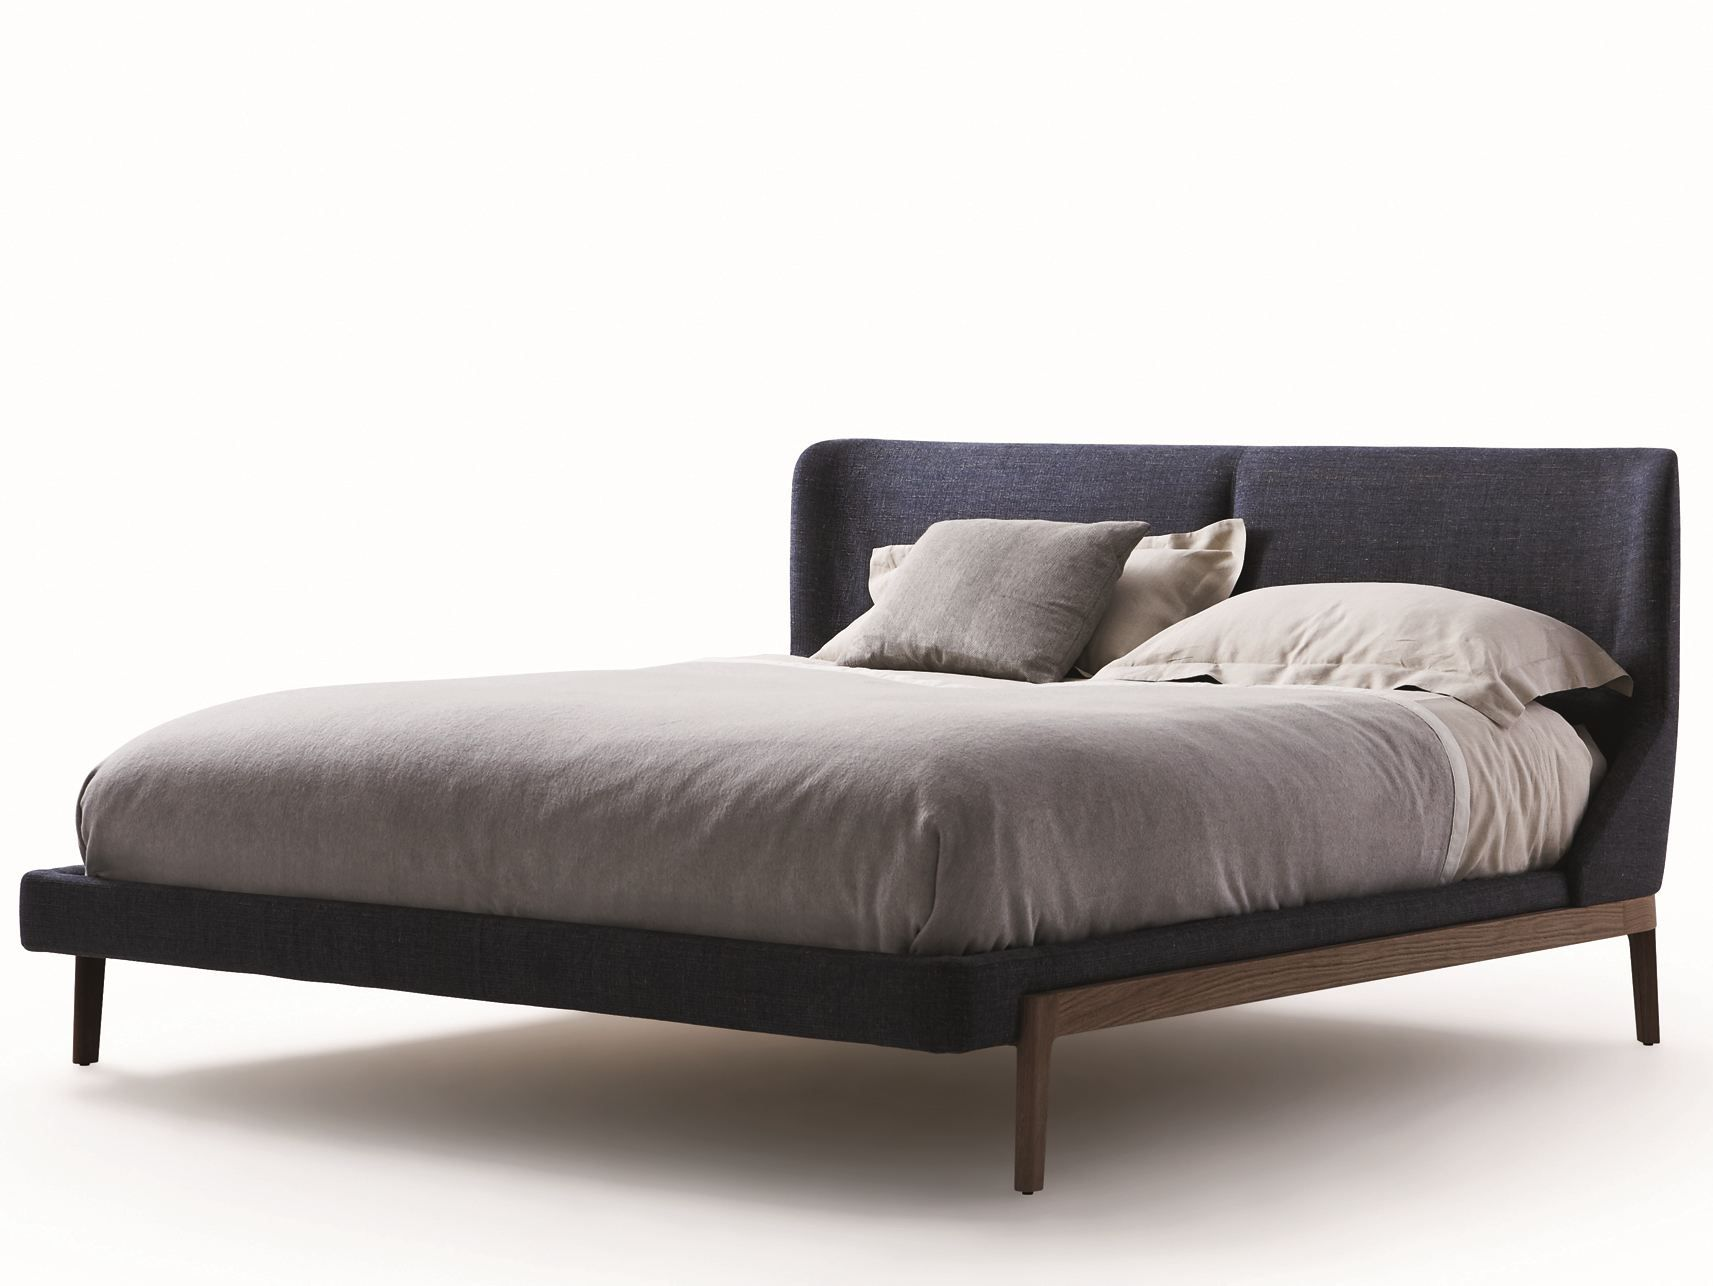 fulham bett by molteni c preisliste doppelbett und bett. Black Bedroom Furniture Sets. Home Design Ideas